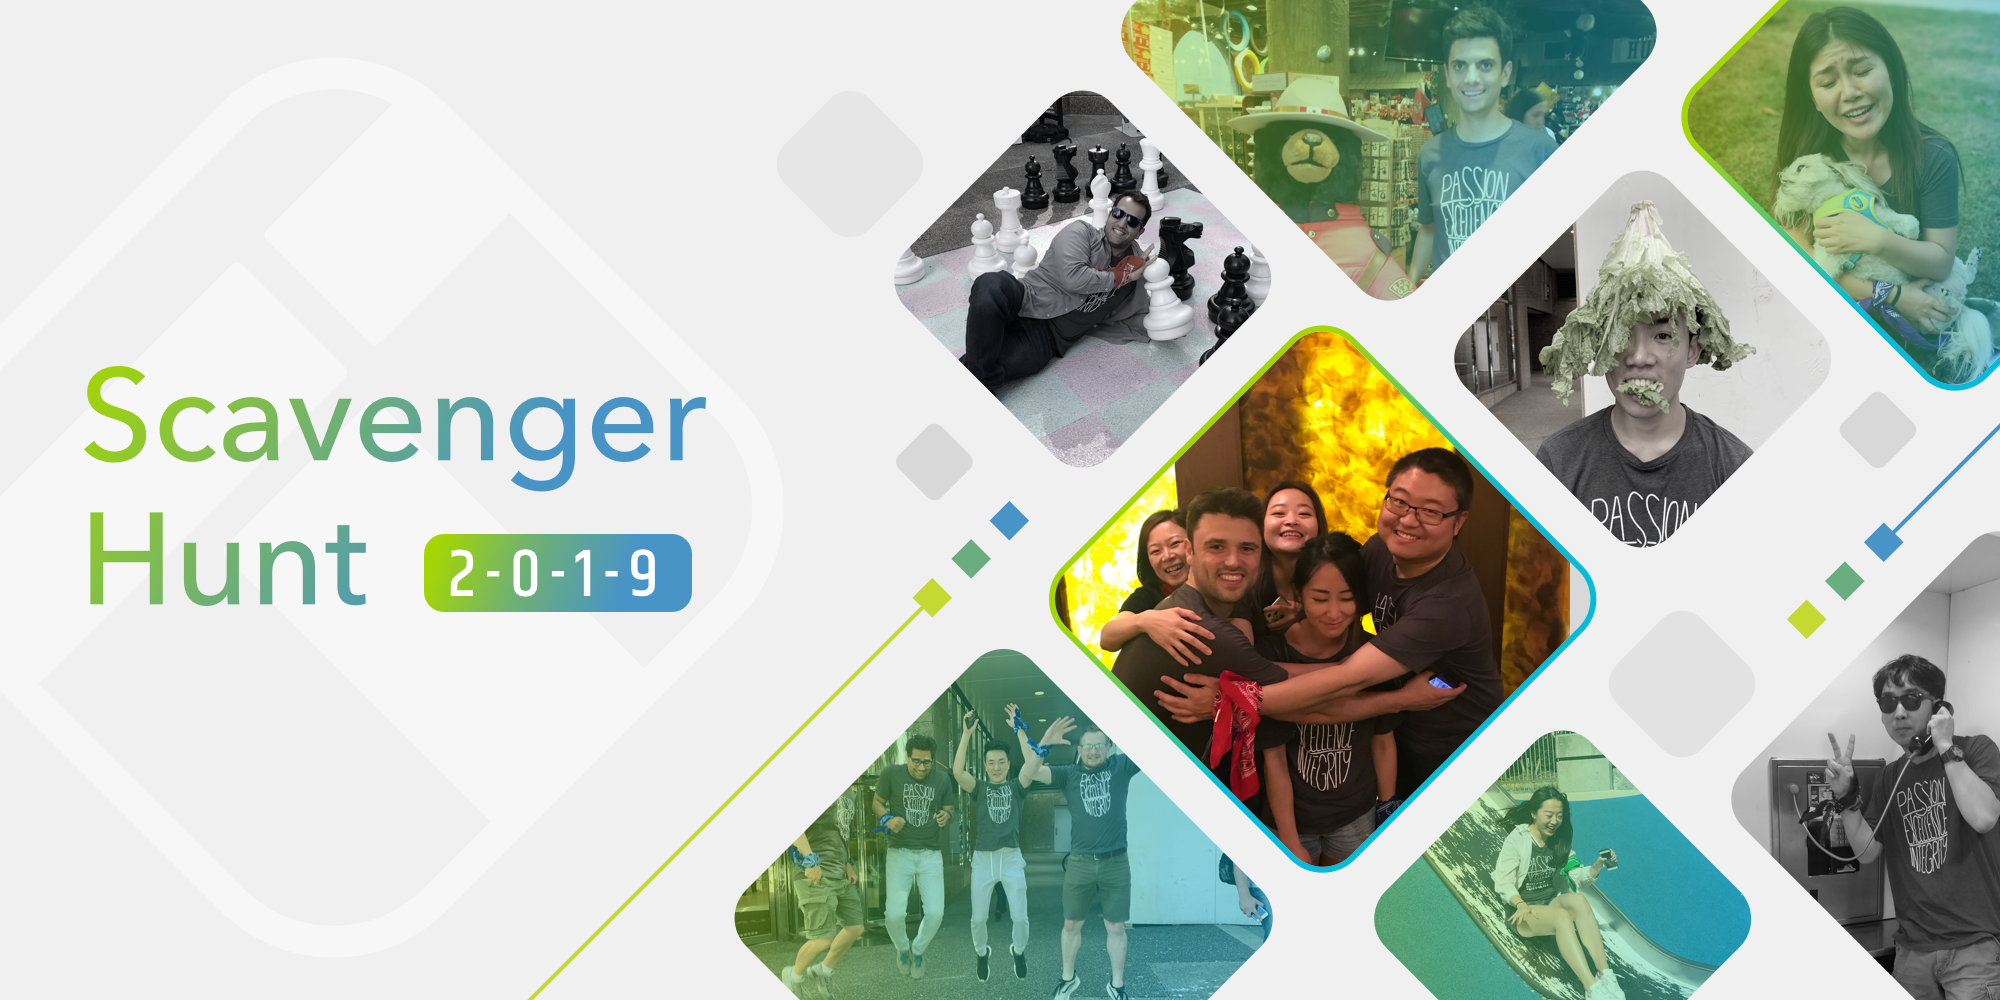 TTT Scavenger hunt blog banner with pictures from the event